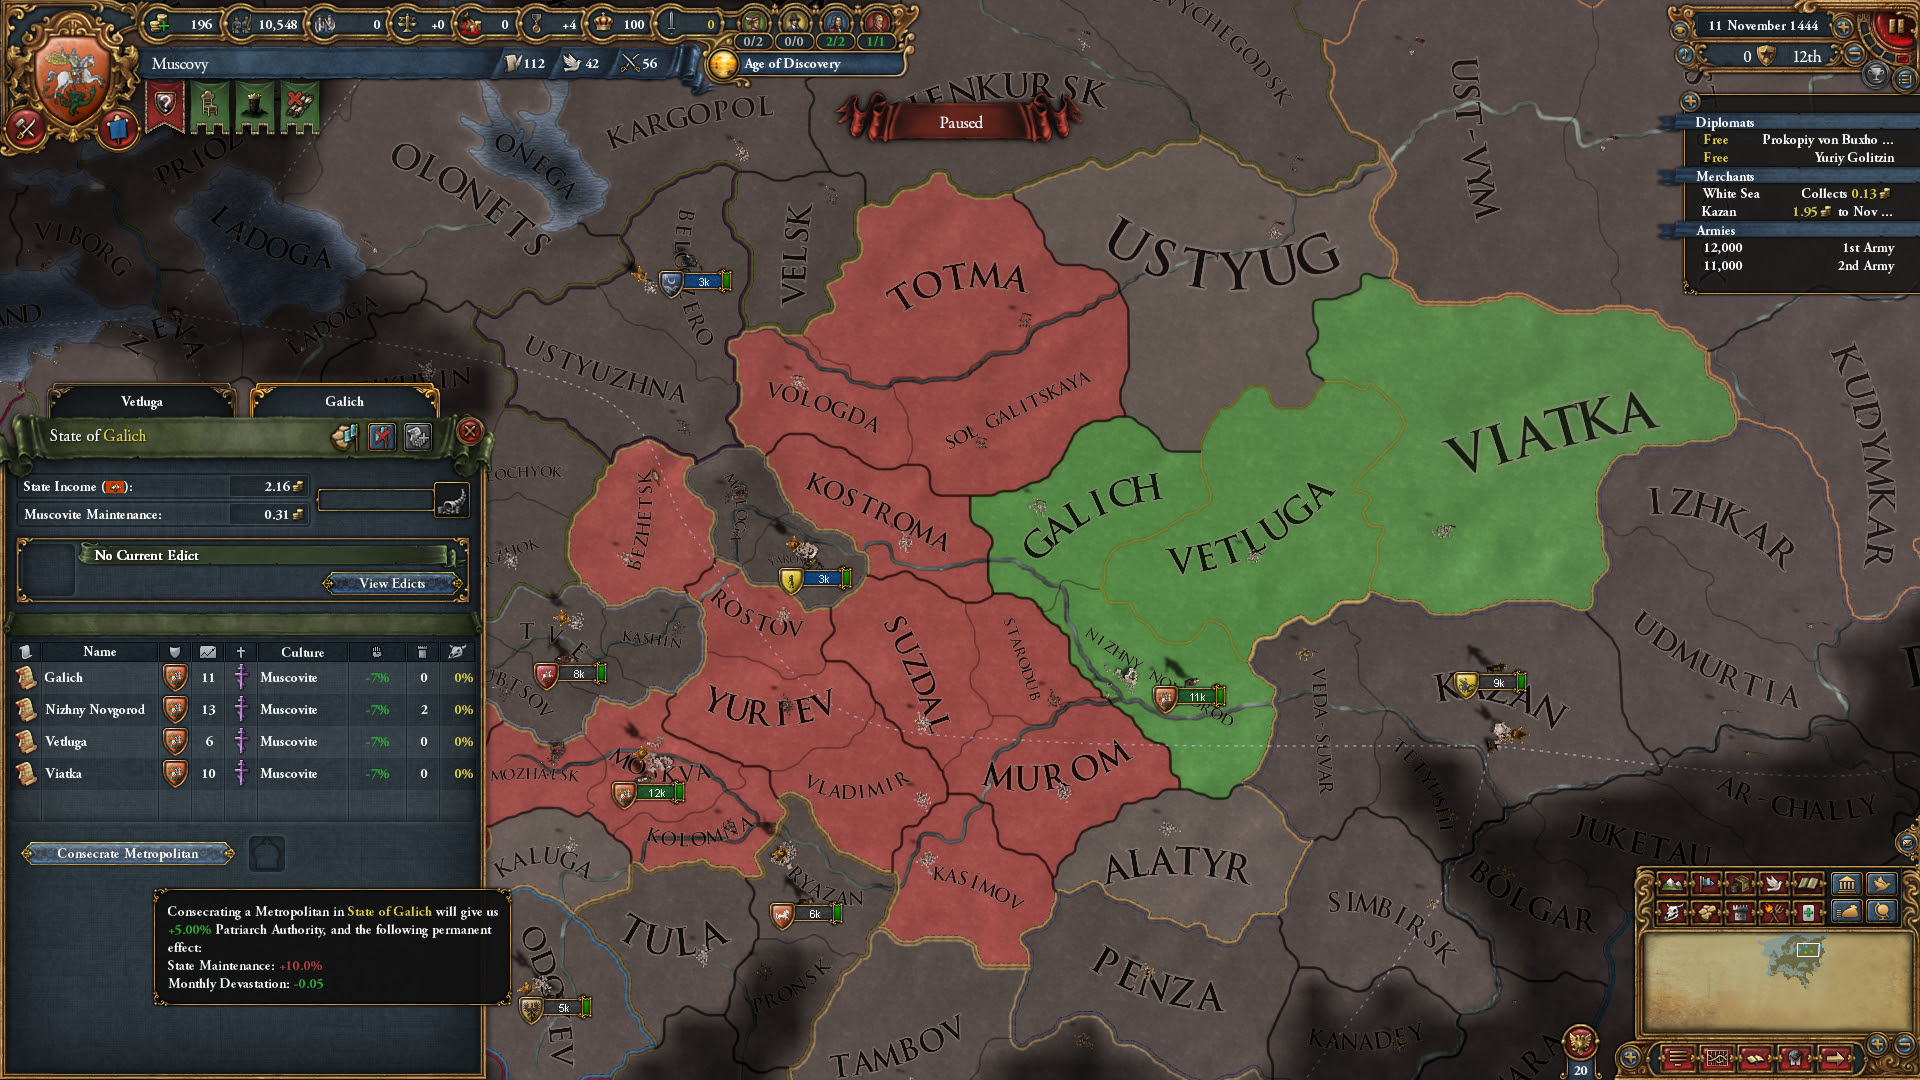 The Russians are coming for Europa Universalis IV screenshot